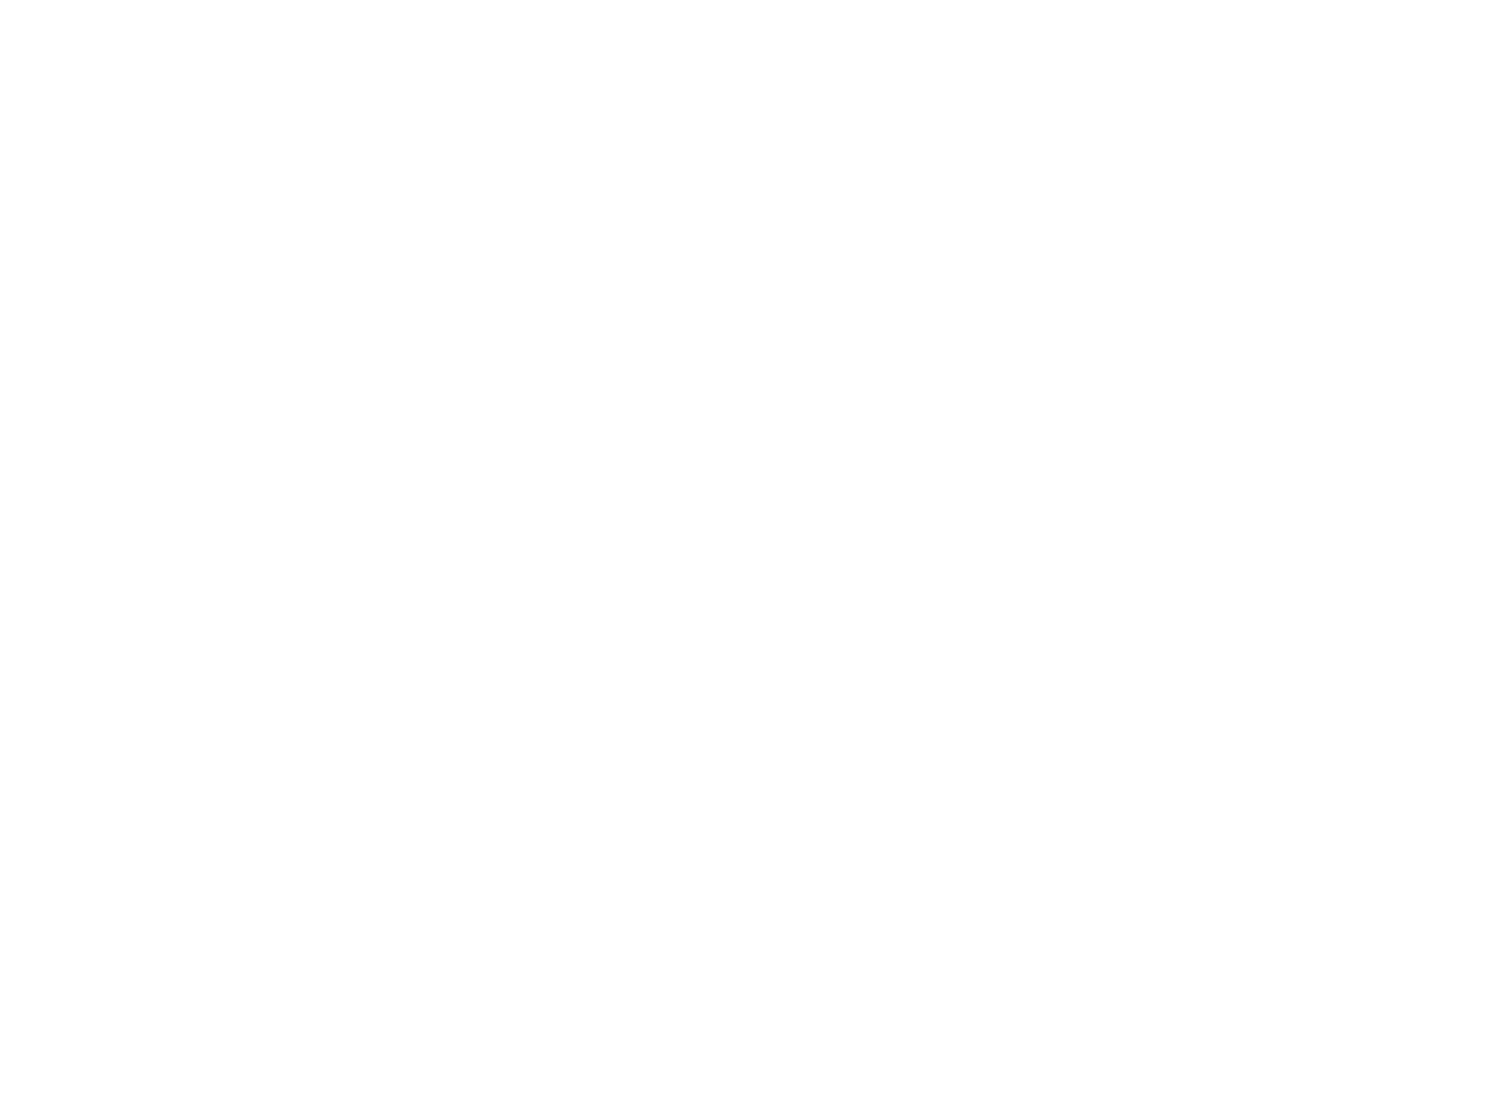 ARCHERY COFFEE